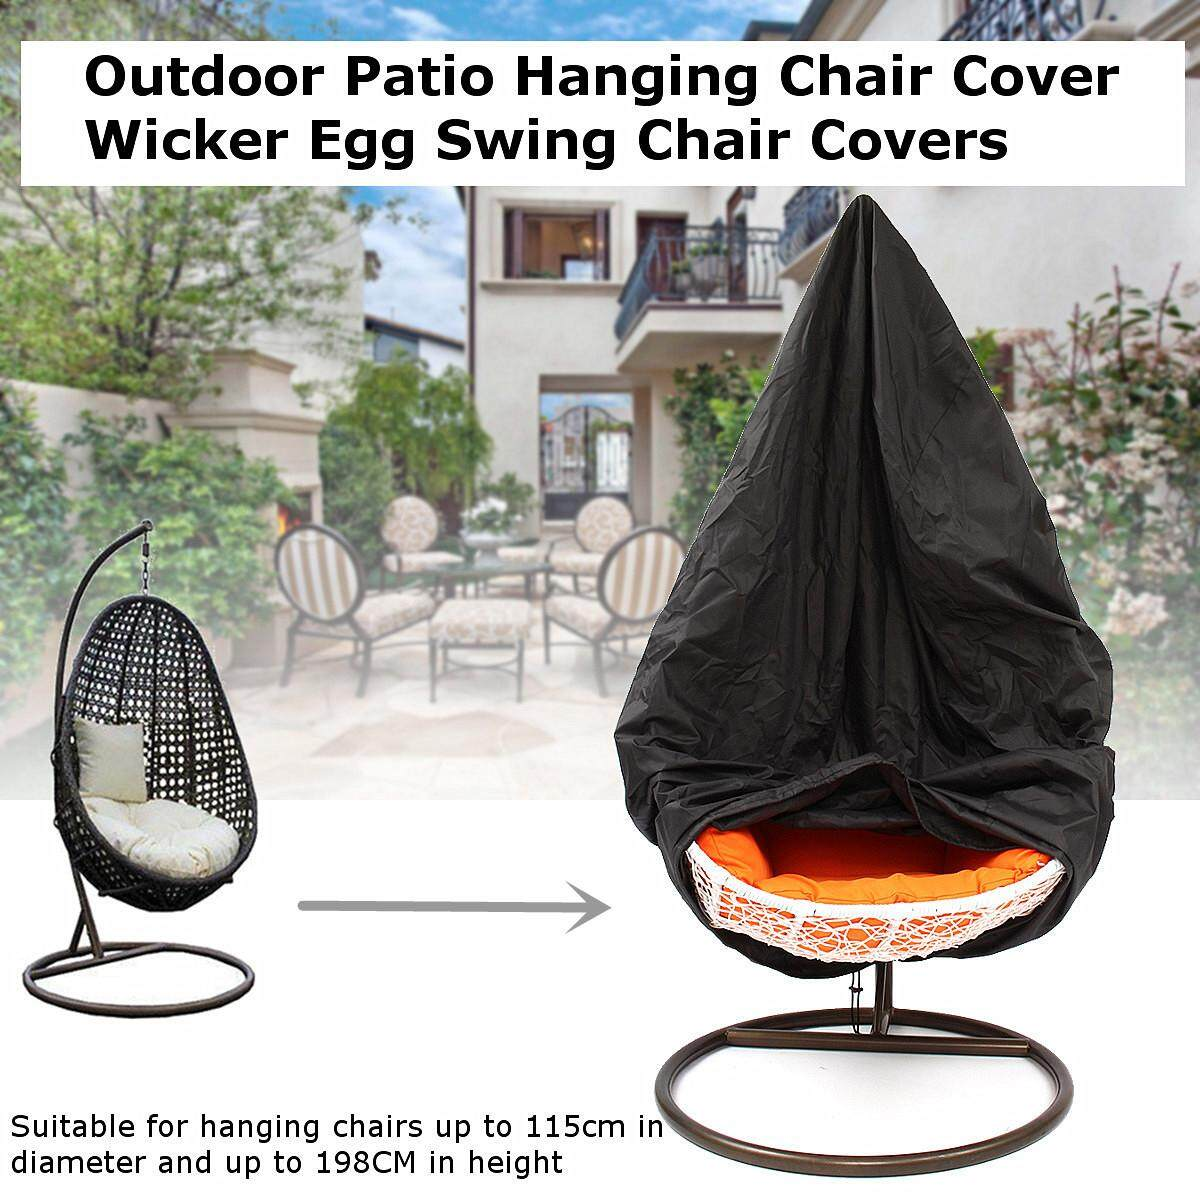 Outdoor Patio Hanging Chair Cover Wicker Egg Swing Chair Covers Heavy Duty Waterproof 78 H x 45D